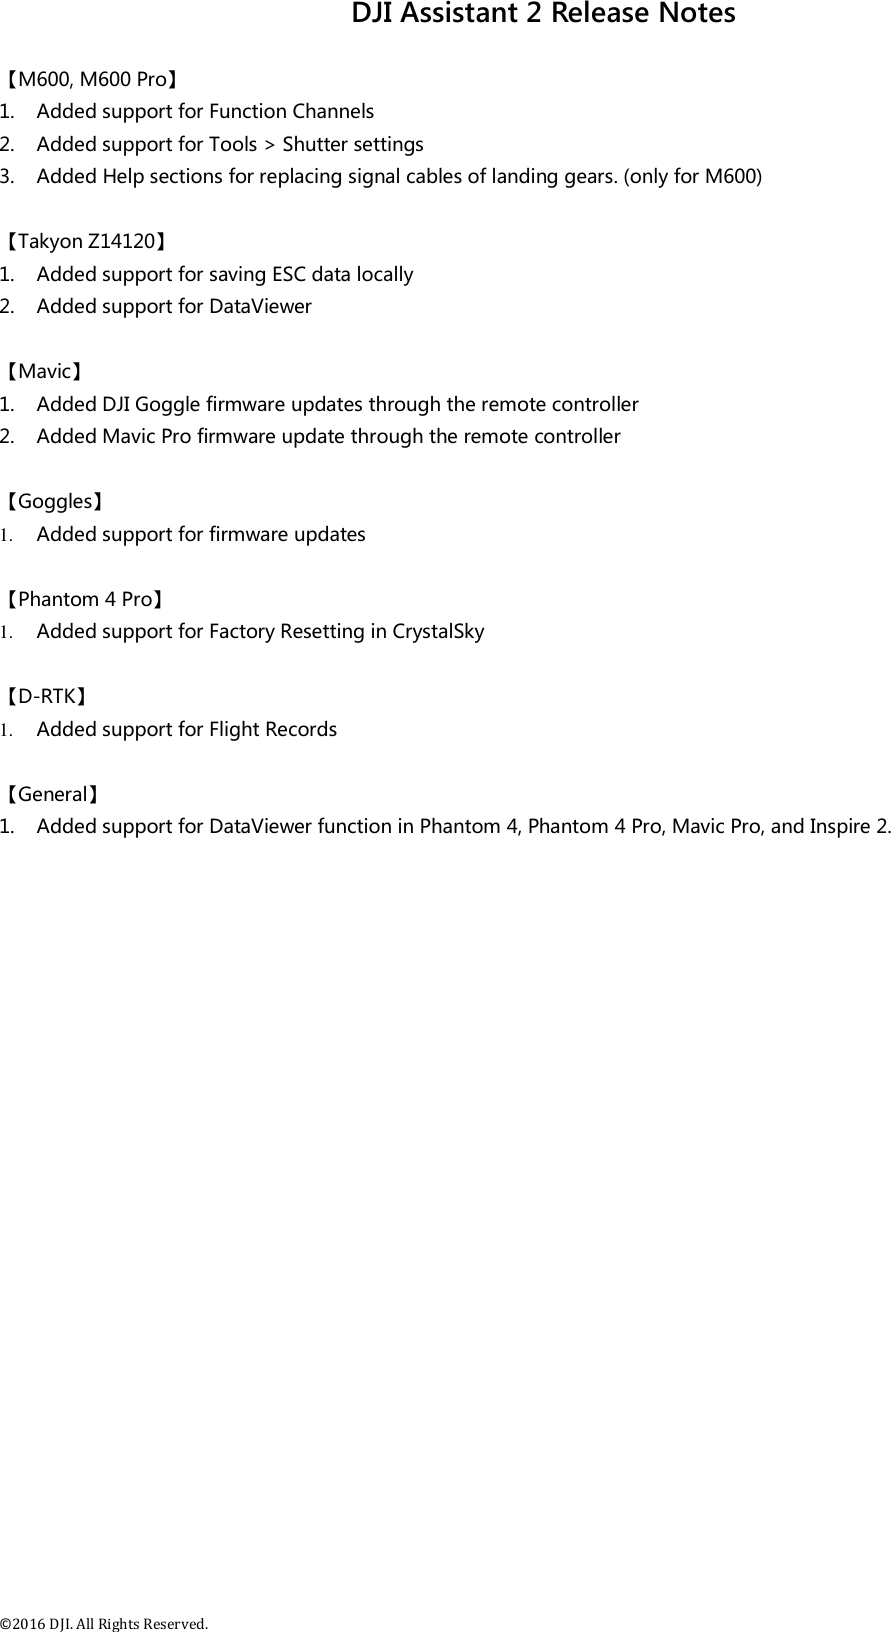 DJI AGRAS MG 1's Specifications Release Note User Manual